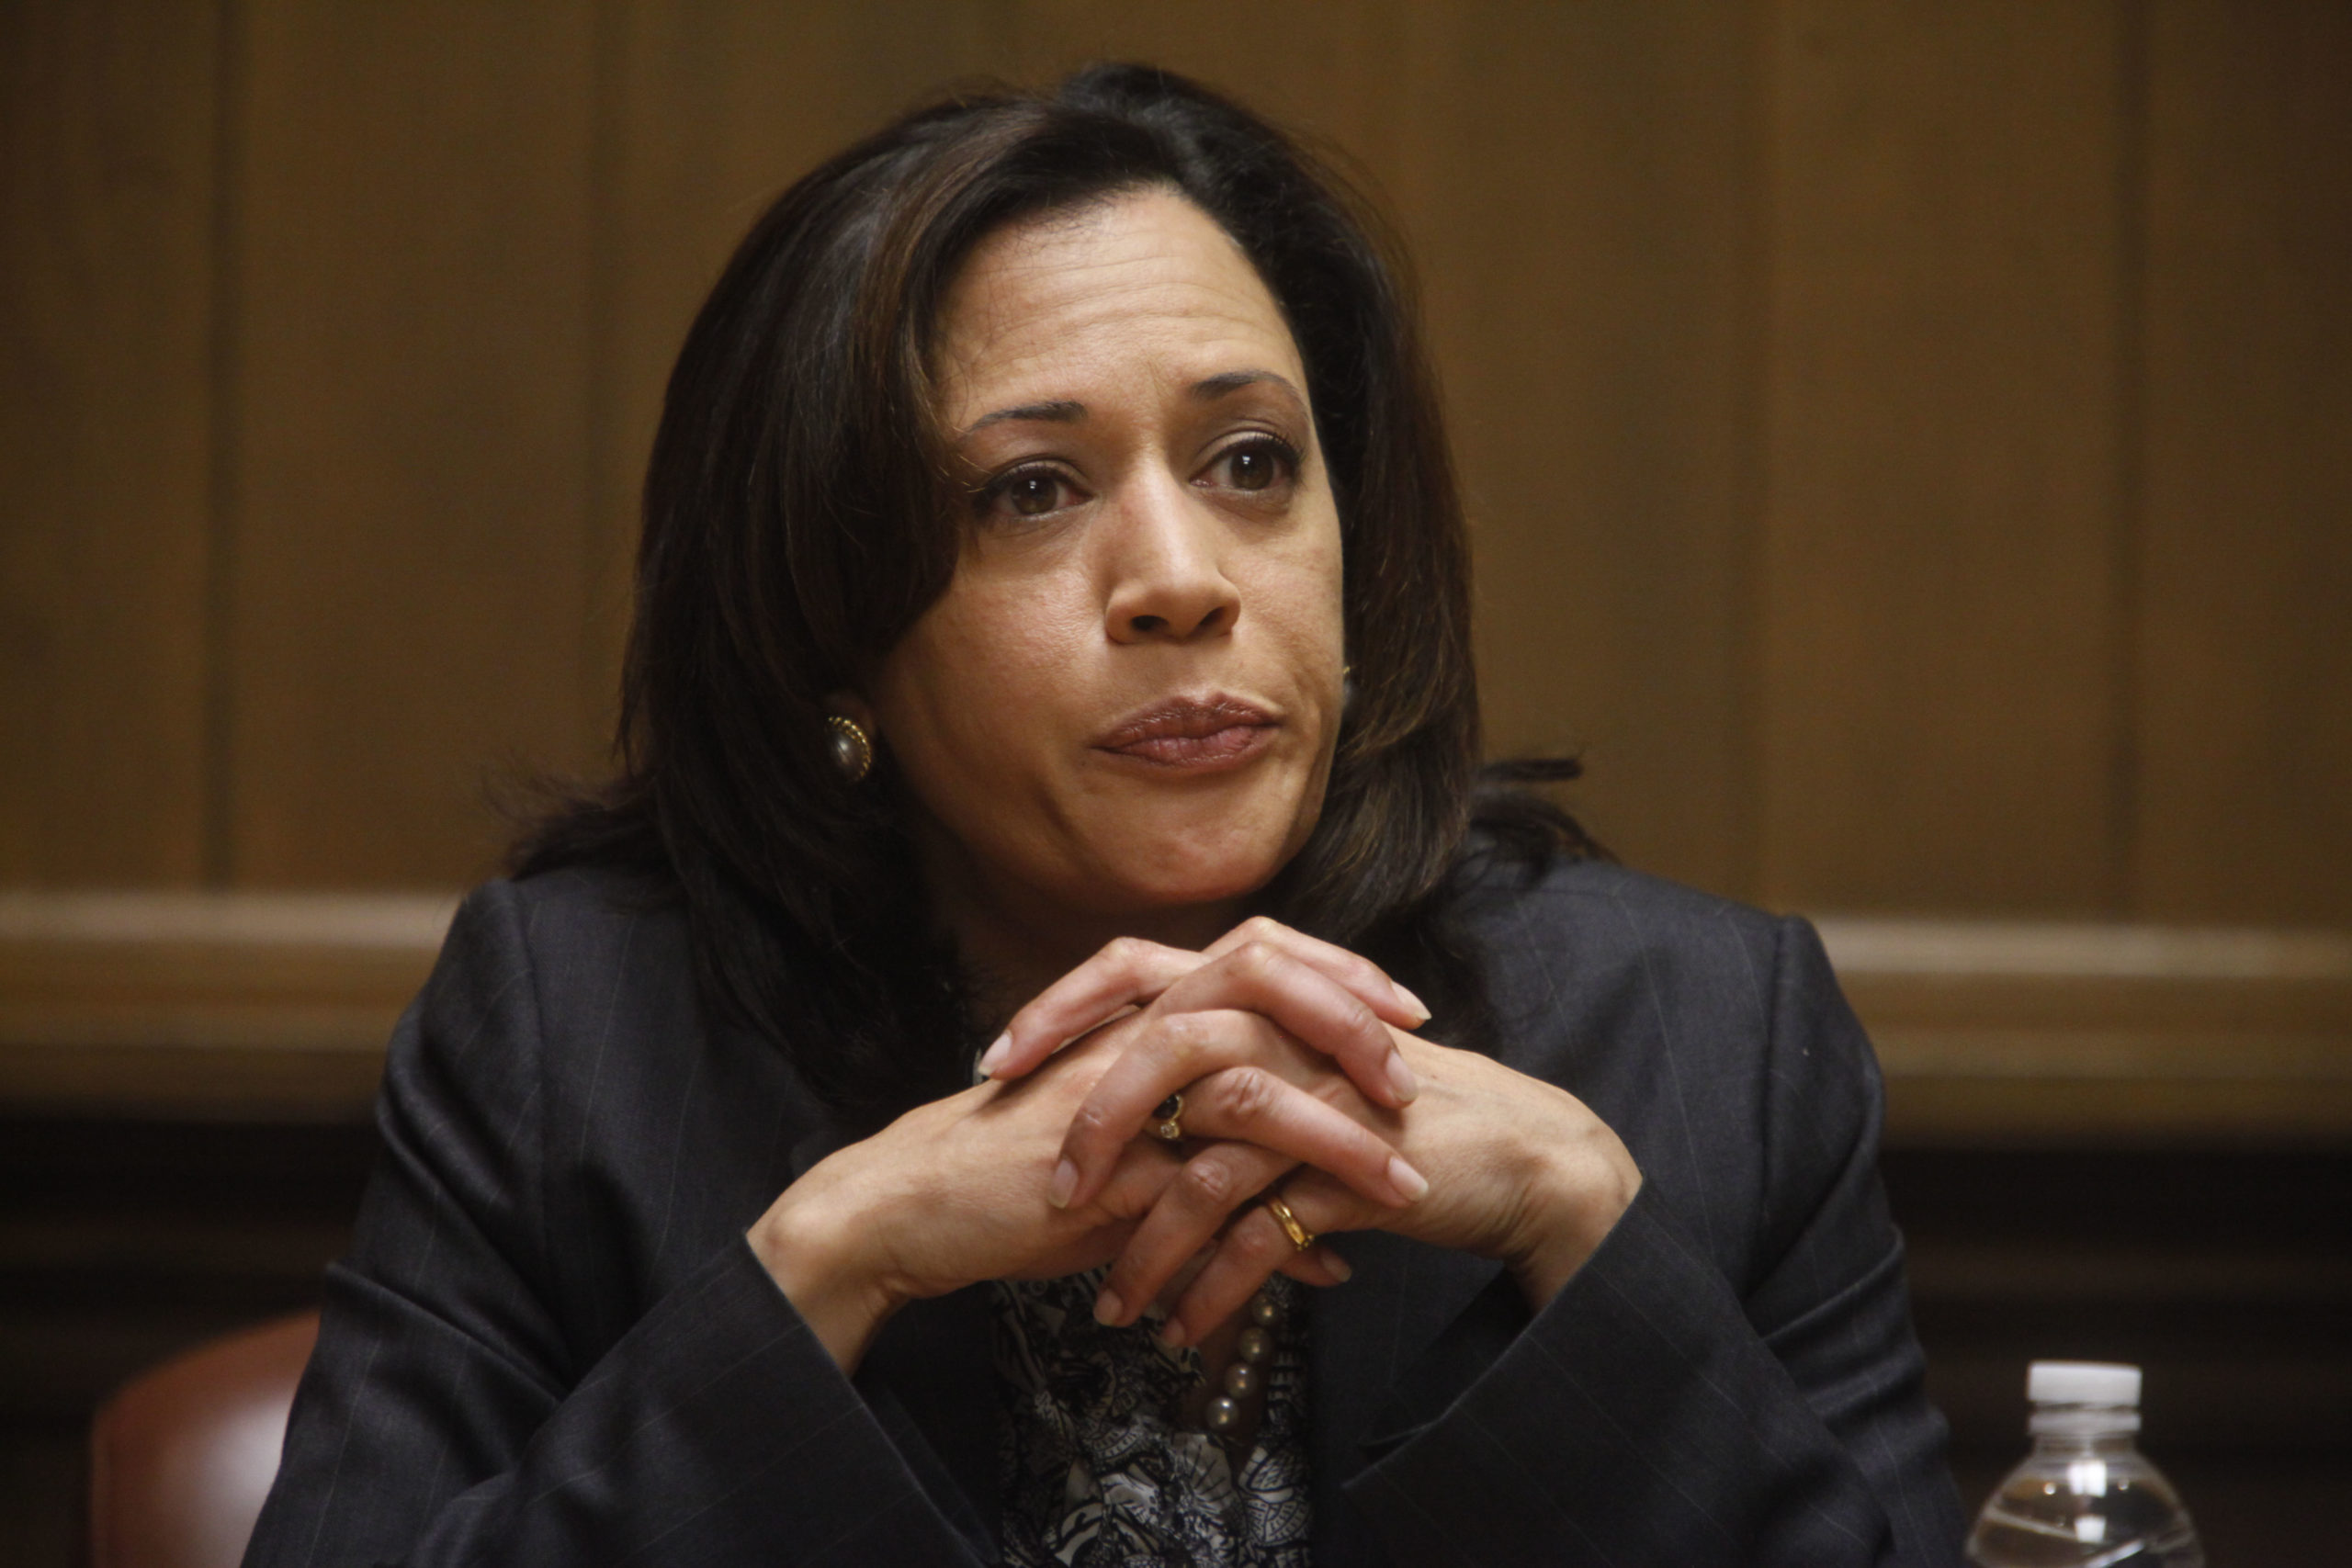 San Francisco District Attorney Kamala Harris during her campaign to become California Attorney General in 2010